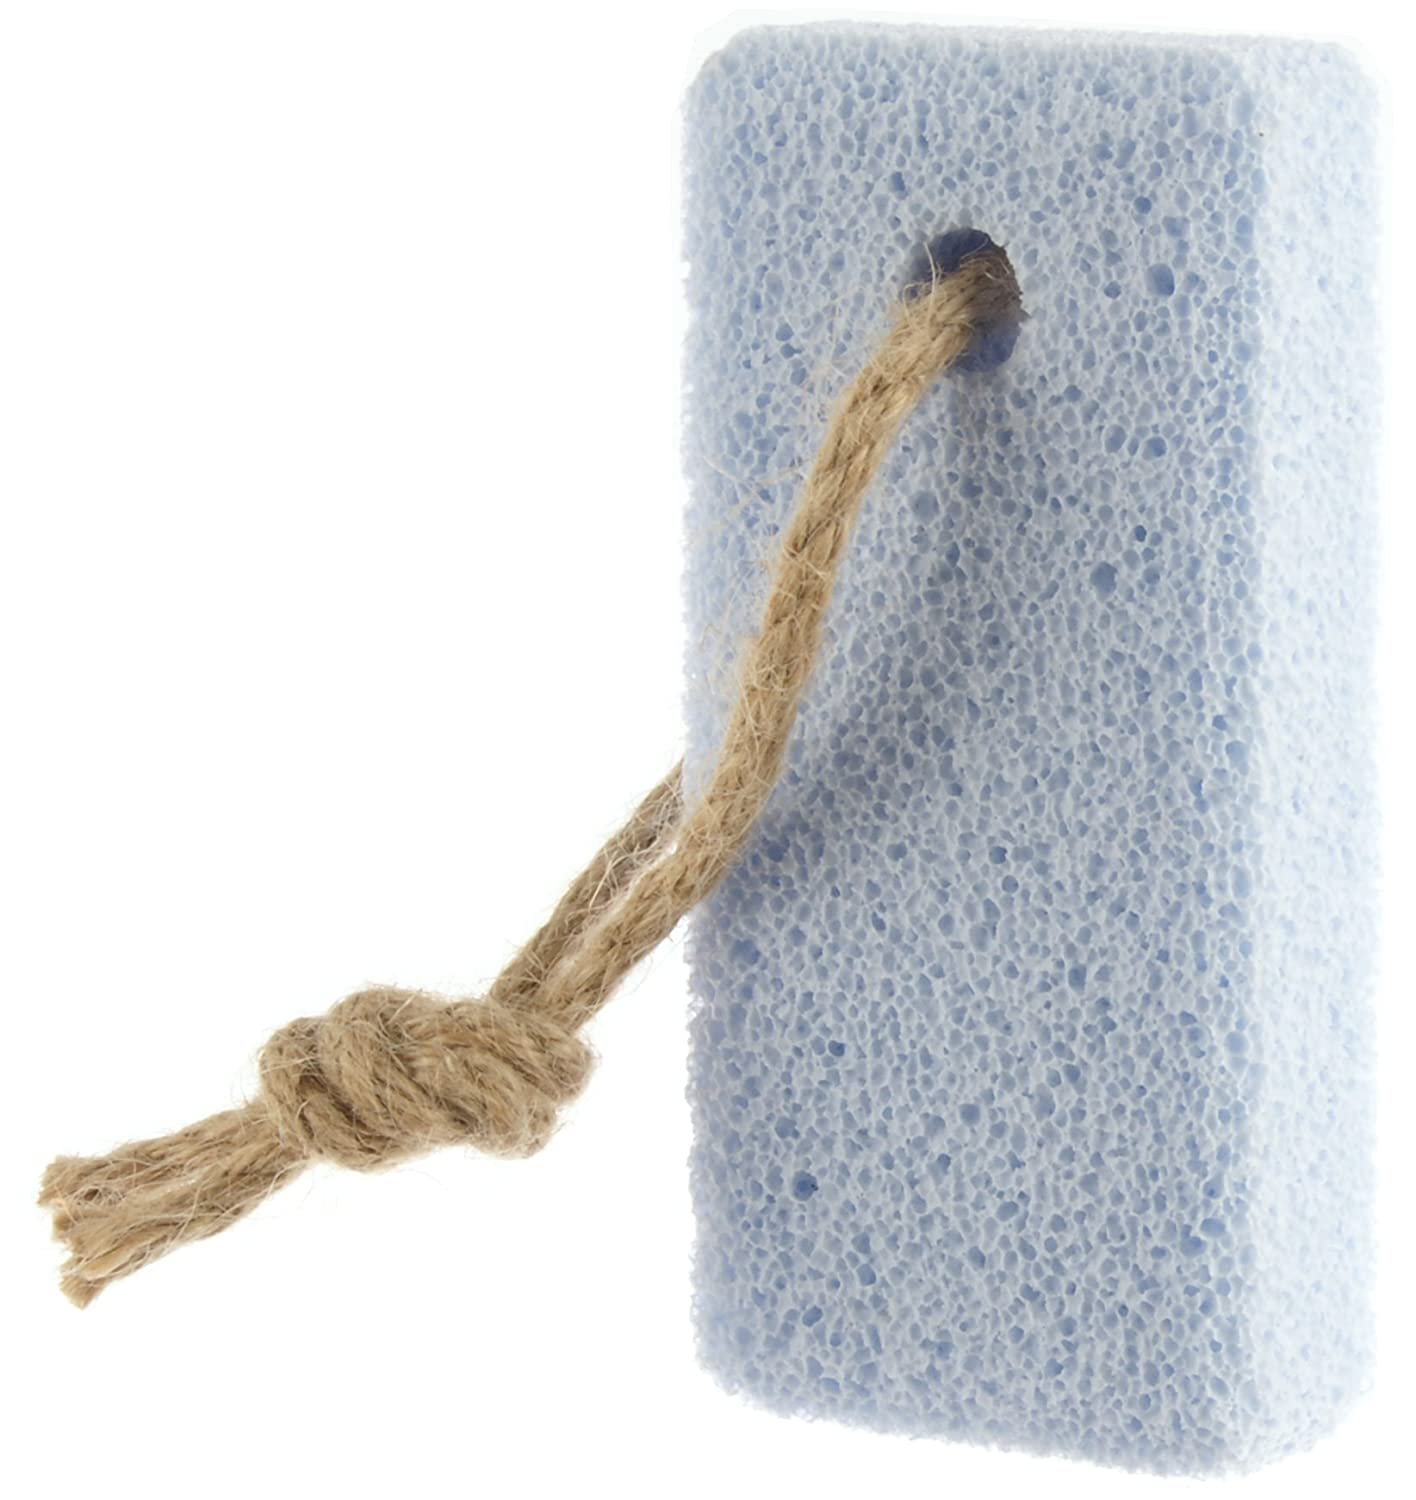 Rough Pumice Stone the Callus Remover (Sky Blue) Much Better Than